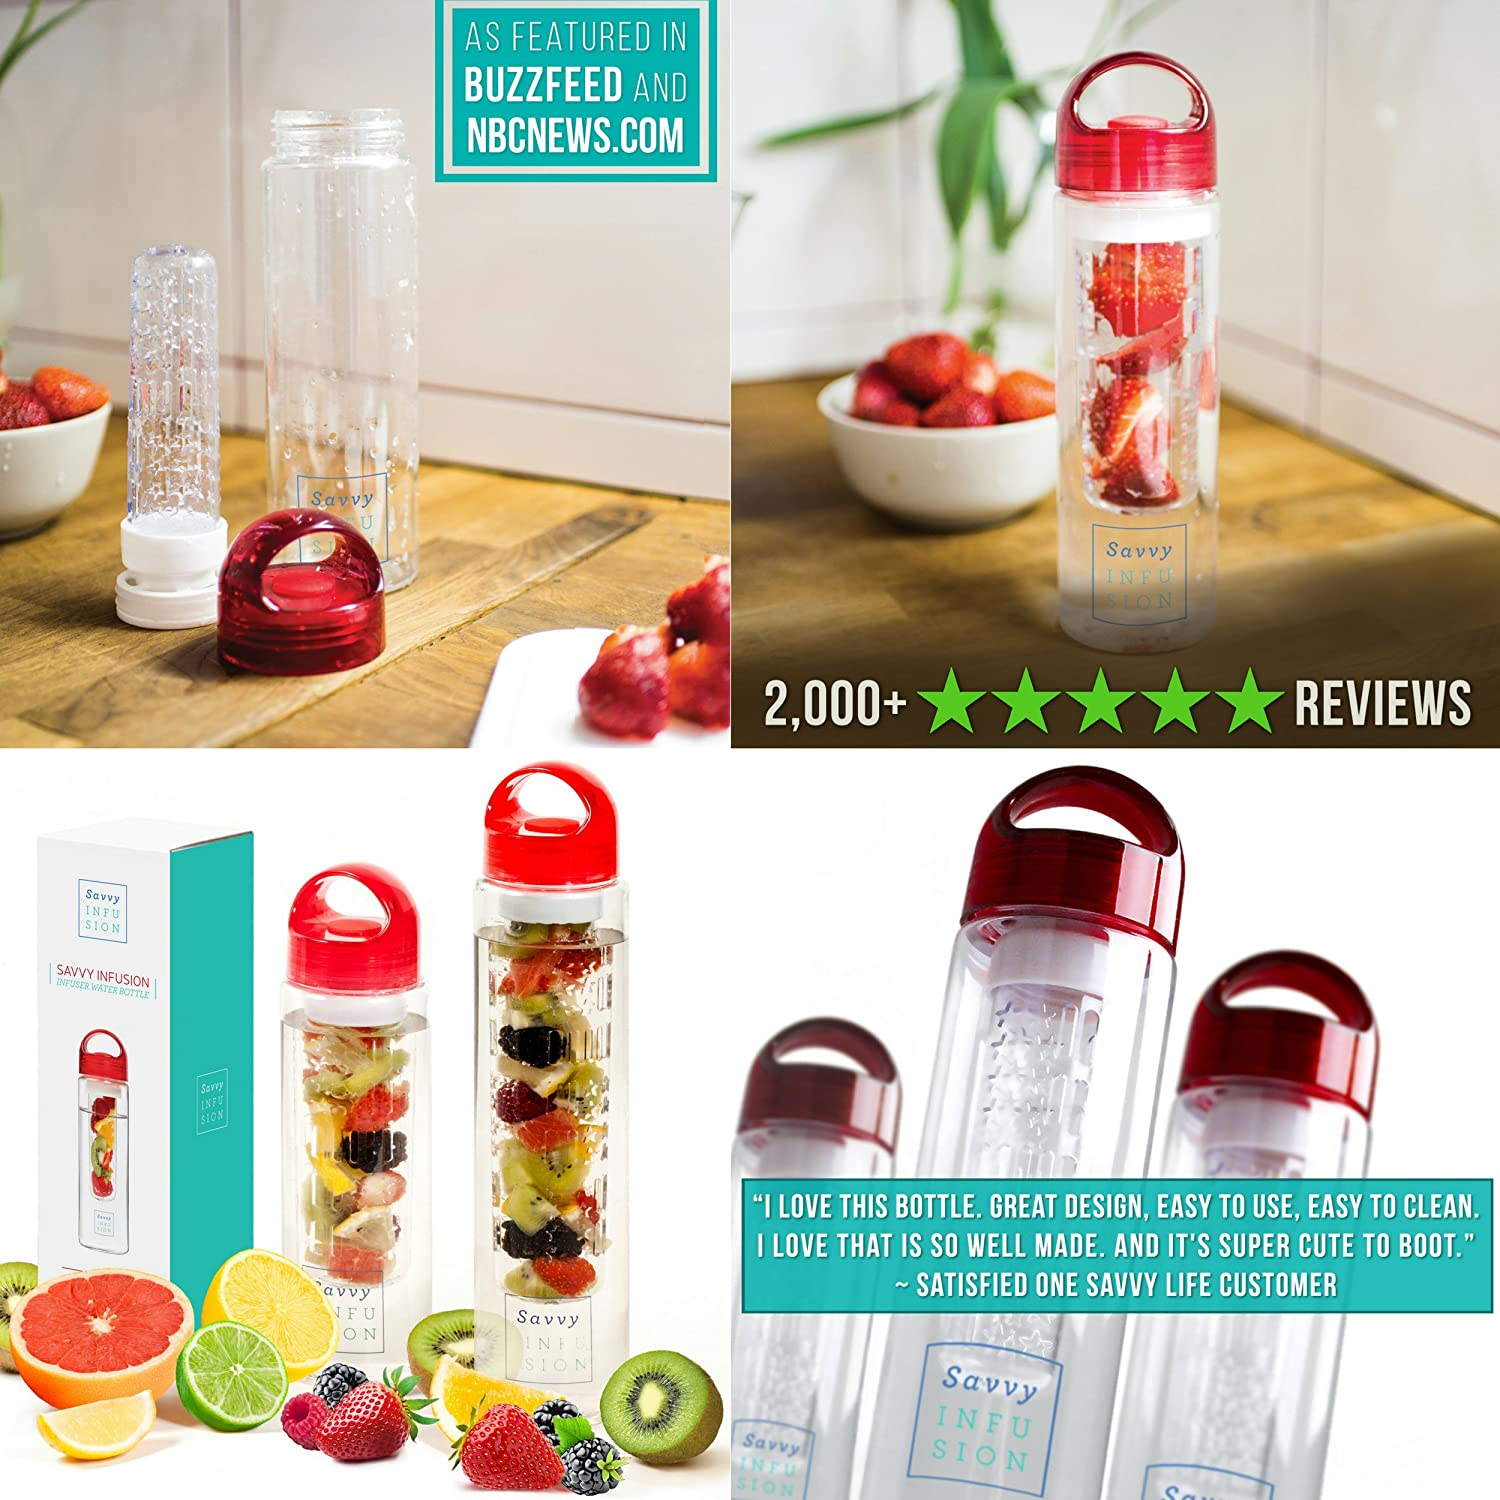 Home 187 schlafen amp bad 187 wellness pur - Amazon Com Savvy Infusion Water Bottles 24 Or 32 Ounce Featuring Unique Leak Proof Sealed Cap W Handle Includes Bonus Recipe Ebook Ships To You In